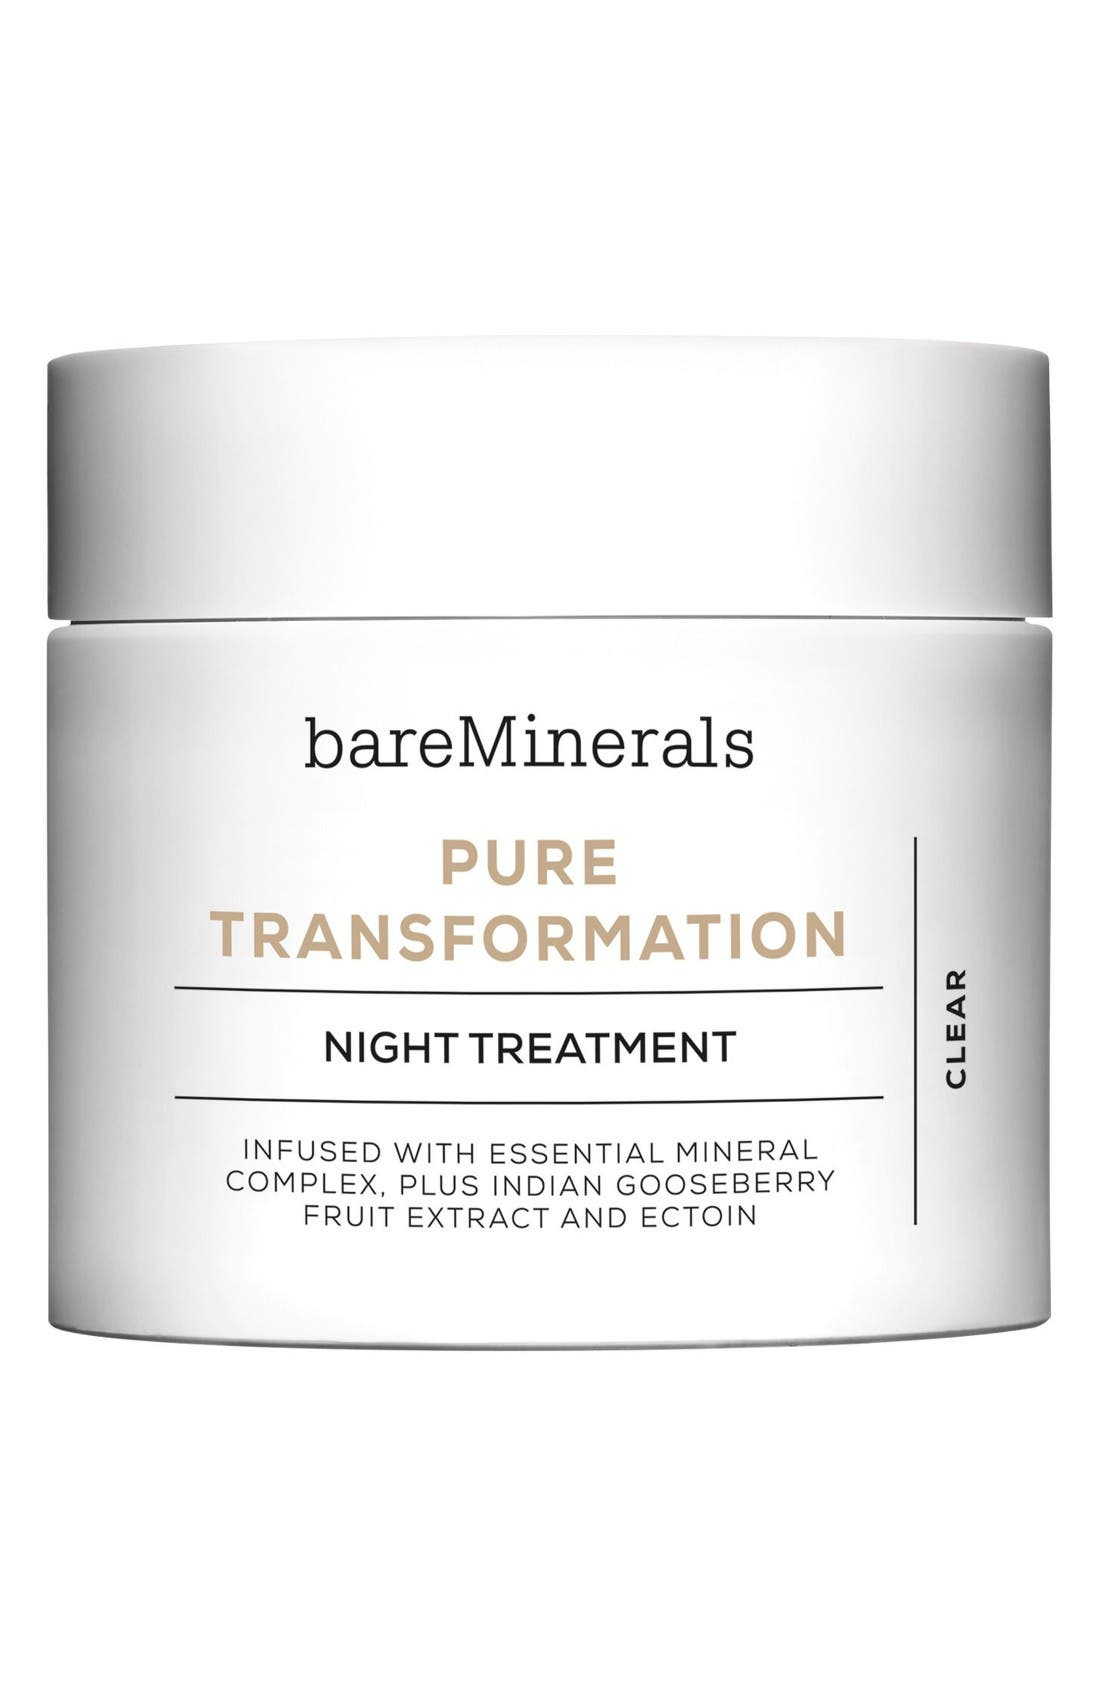 Skinsorials Pure Transformation Night Treatment,                             Main thumbnail 1, color,                             No Color